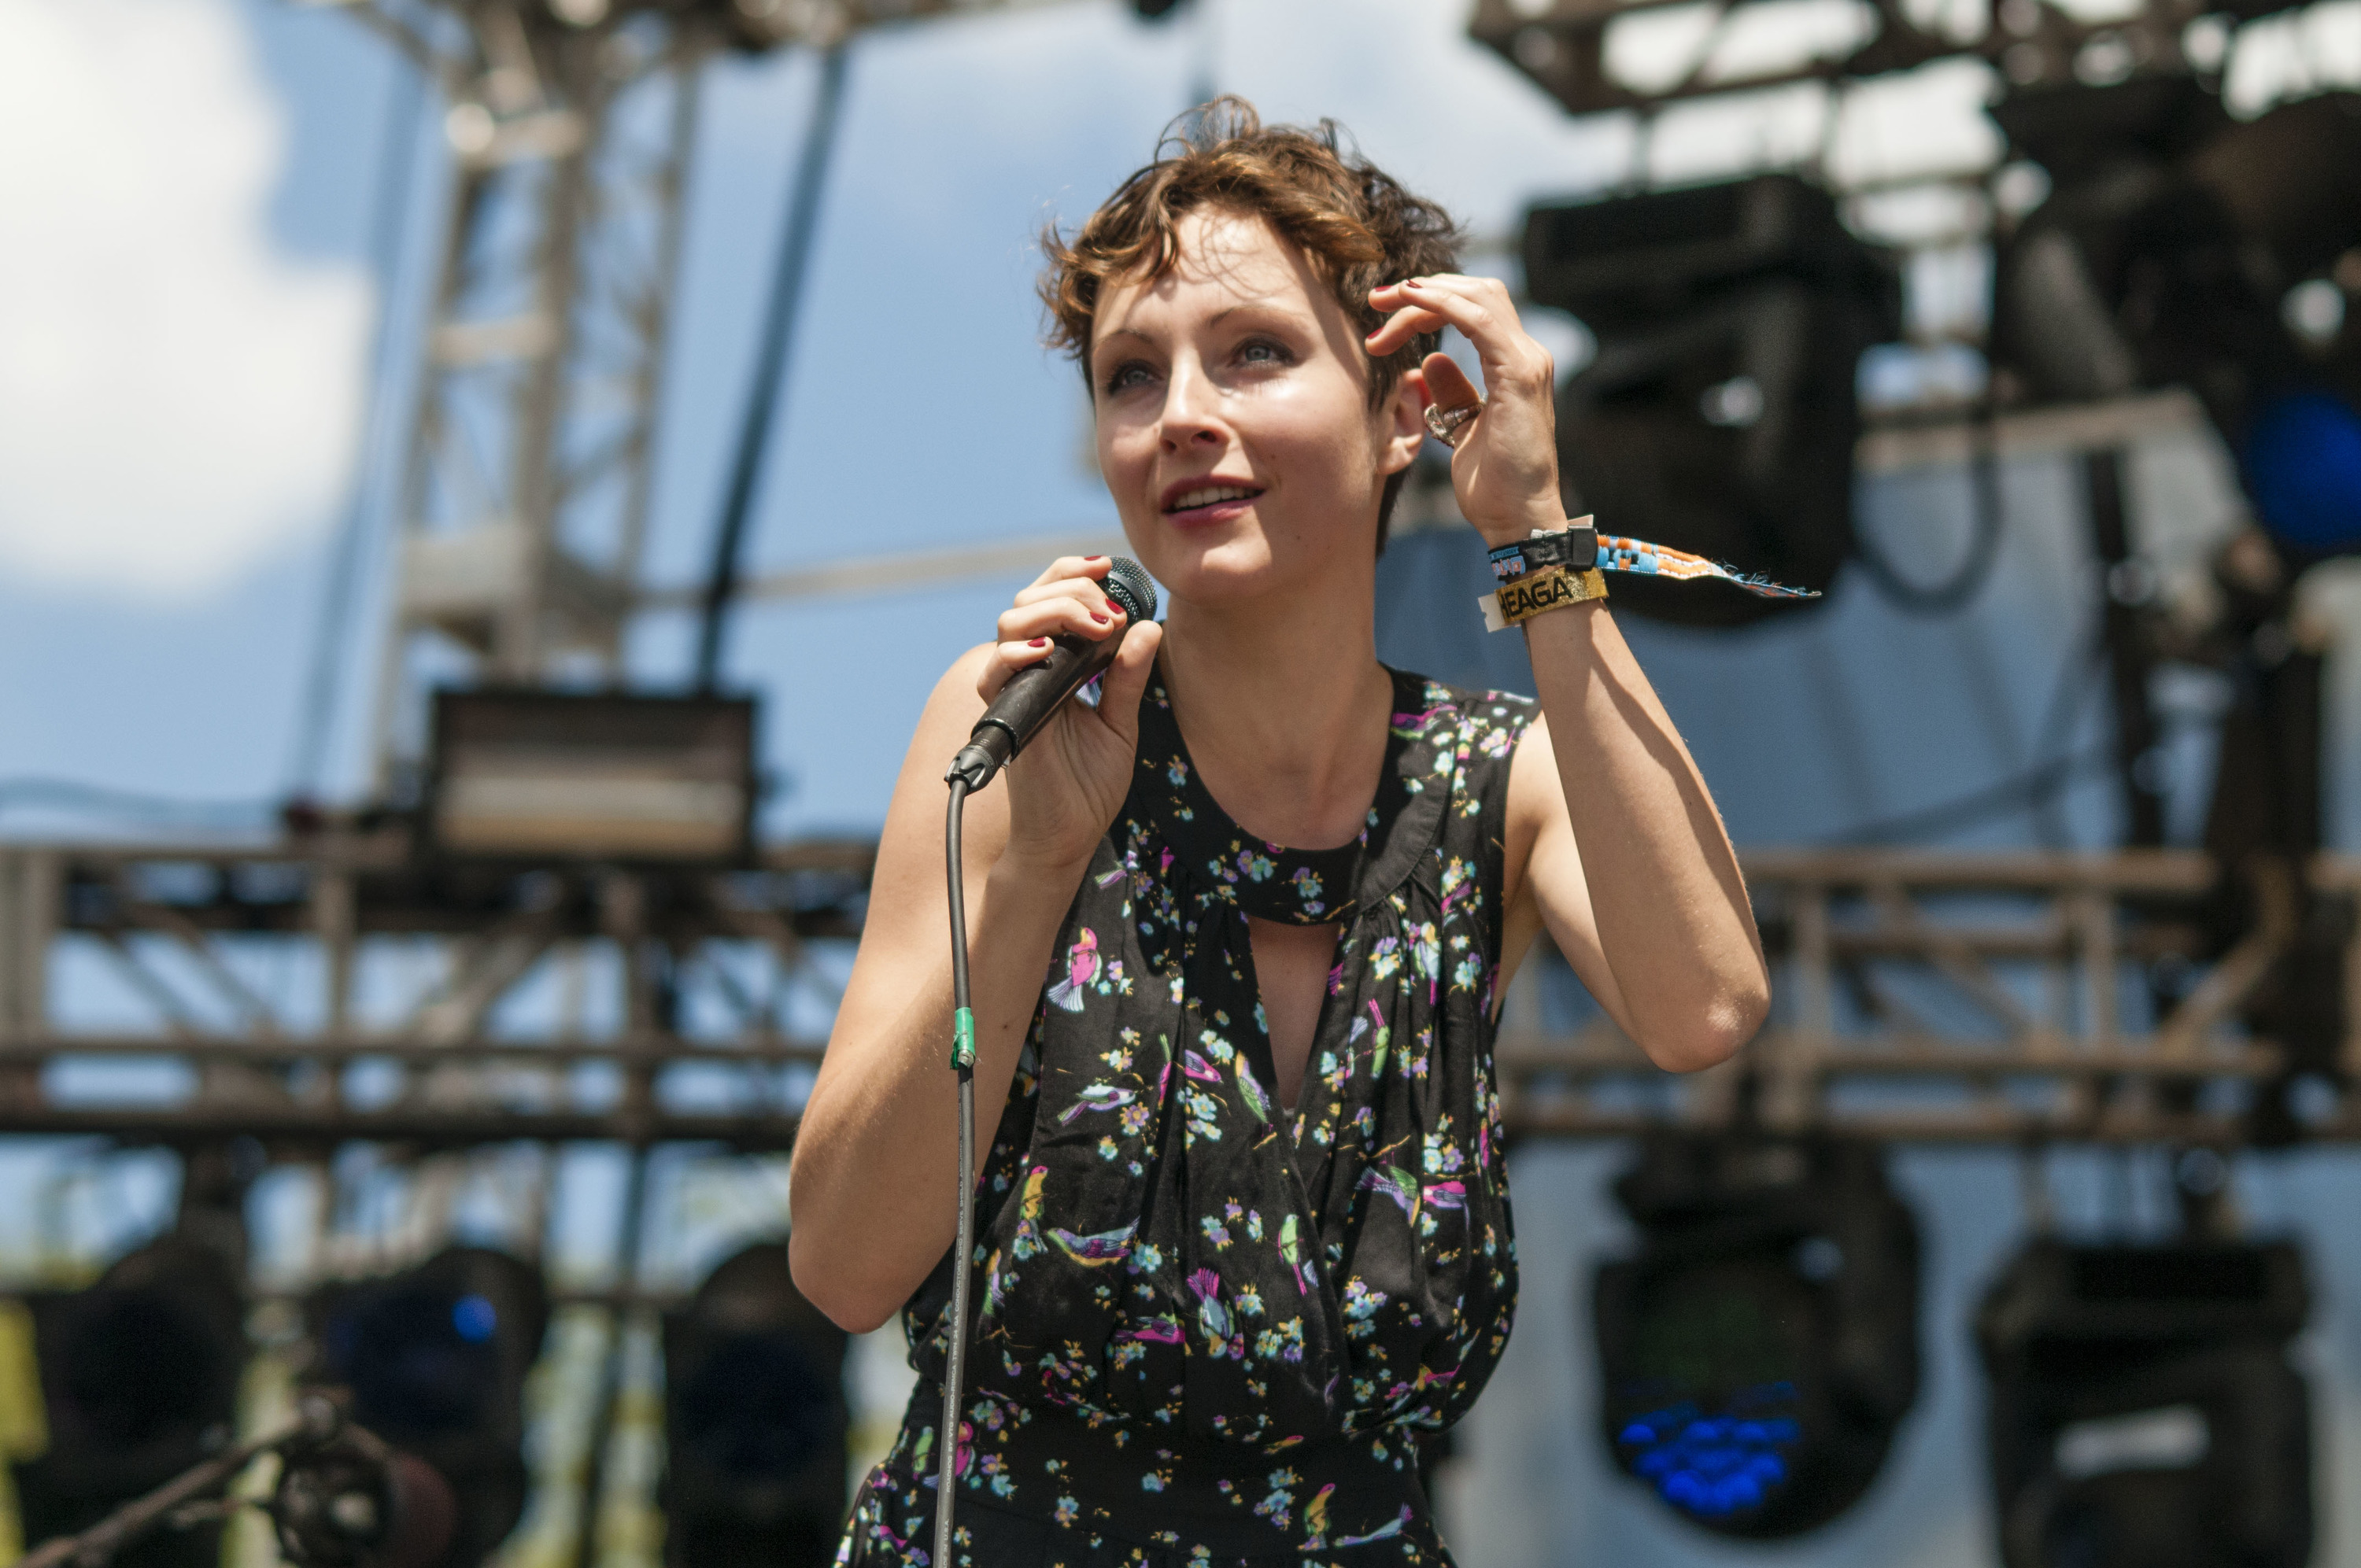 Polica | Lollapalooza | August 5, 2012